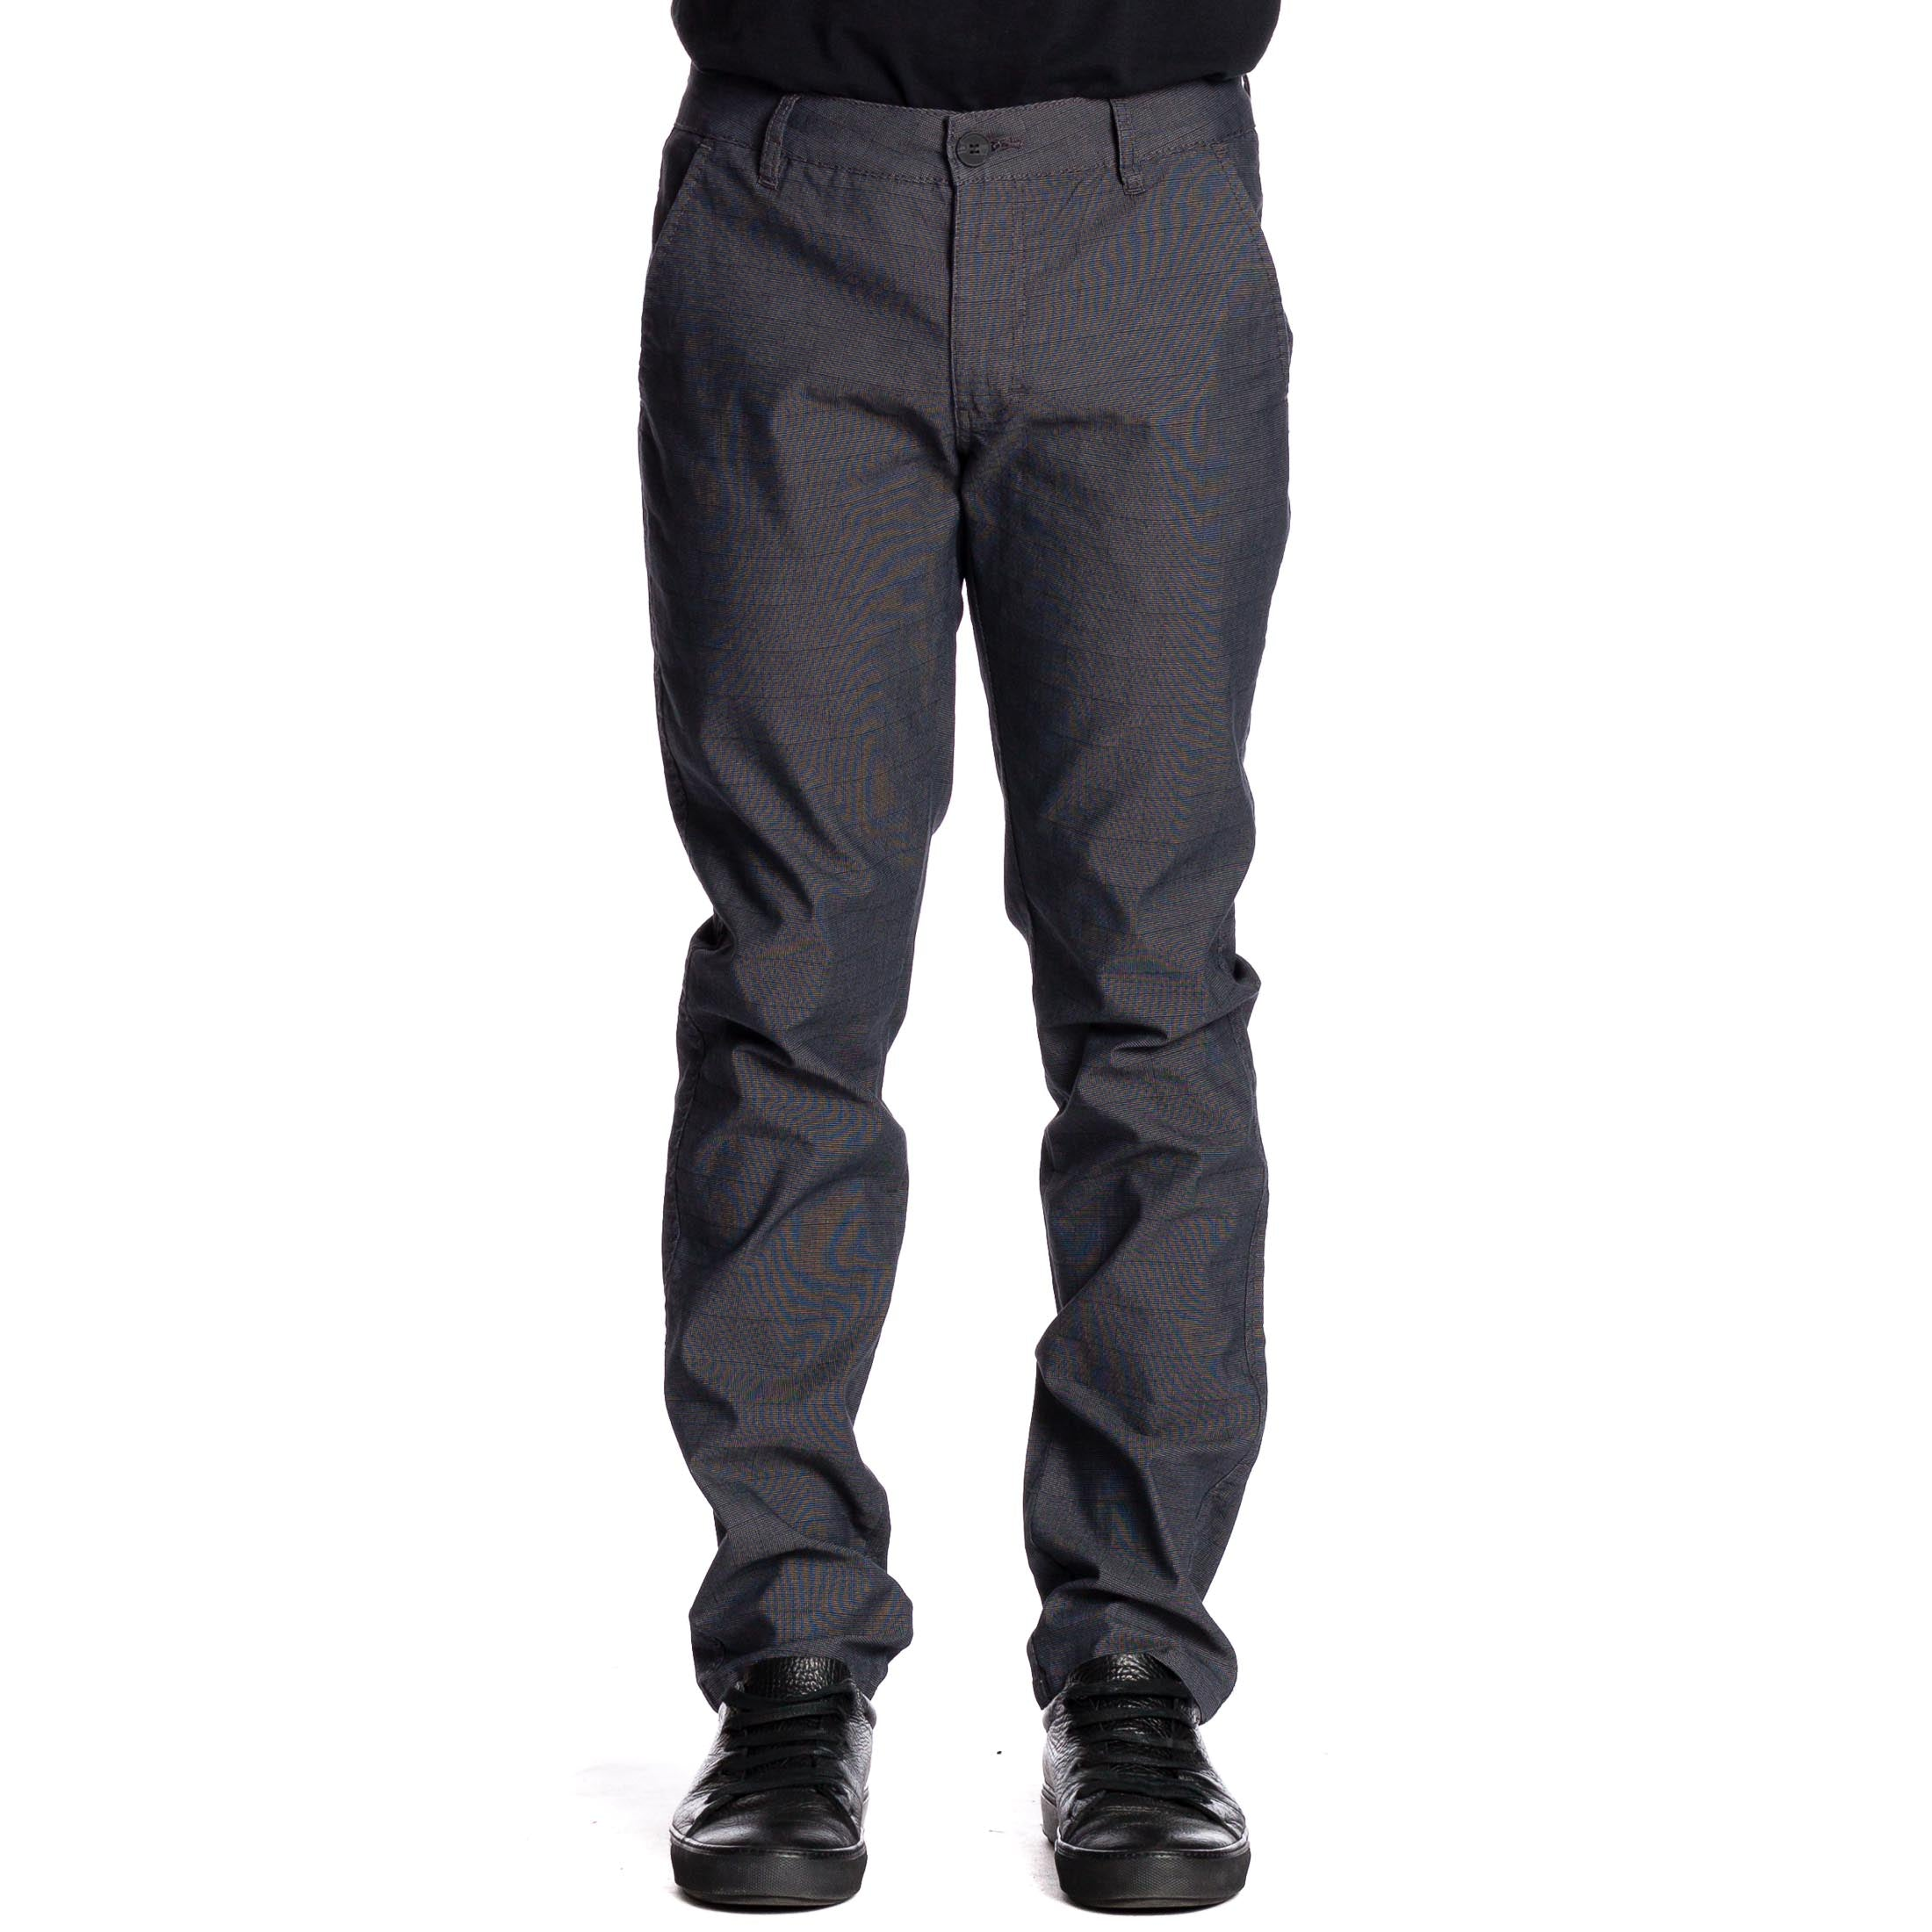 Gridlock Pant - Black - Ezekiel Clothing